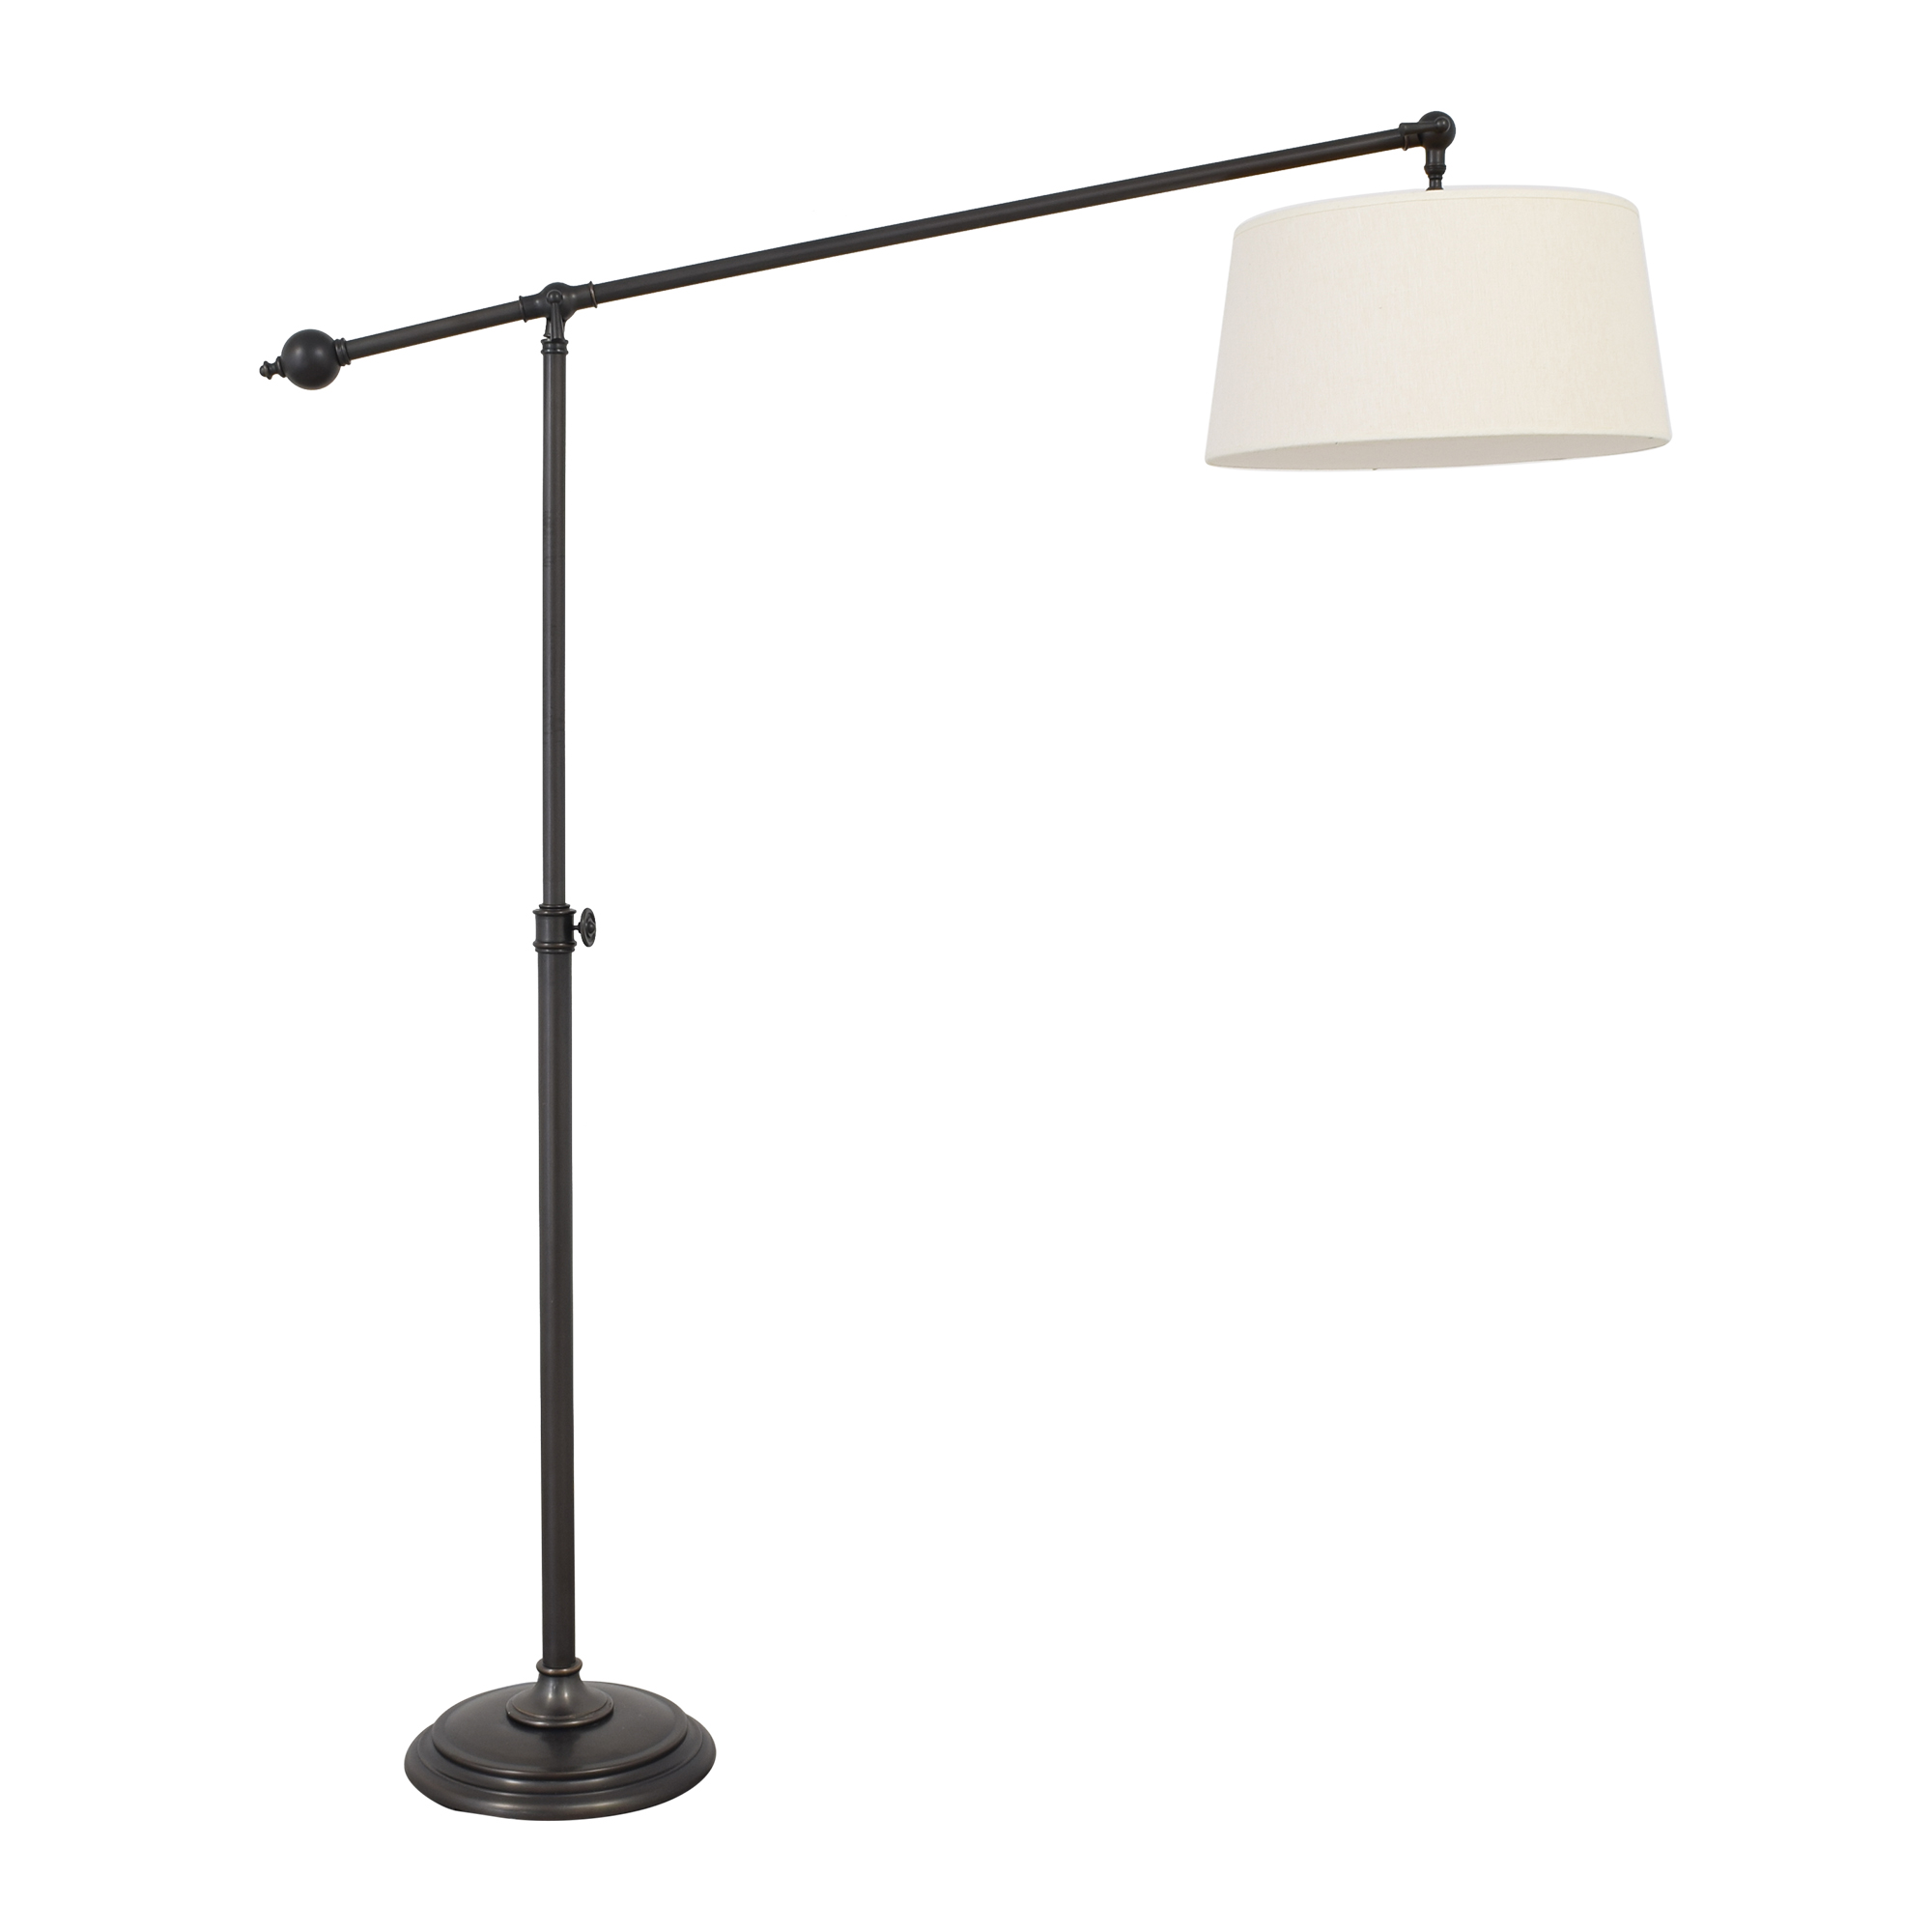 Pottery Barn Swing-Arm Floor Lamp / Decor